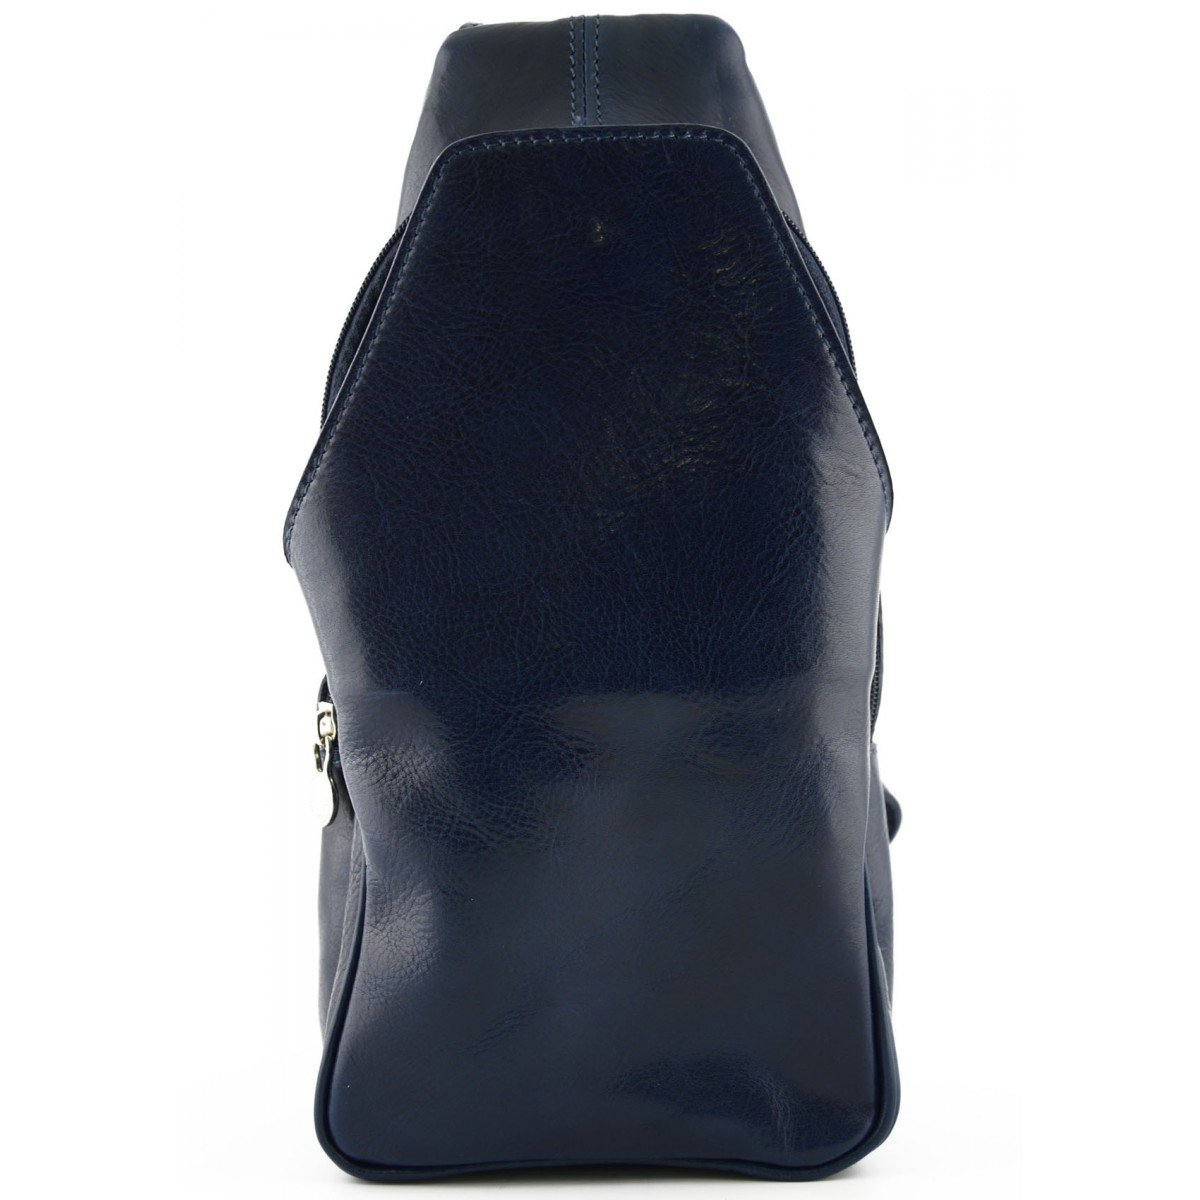 Made In Italy Genuine Leather Mono-Shoulder Backpack With Front Pocket Color Blue - Backpack B01G6CORCW